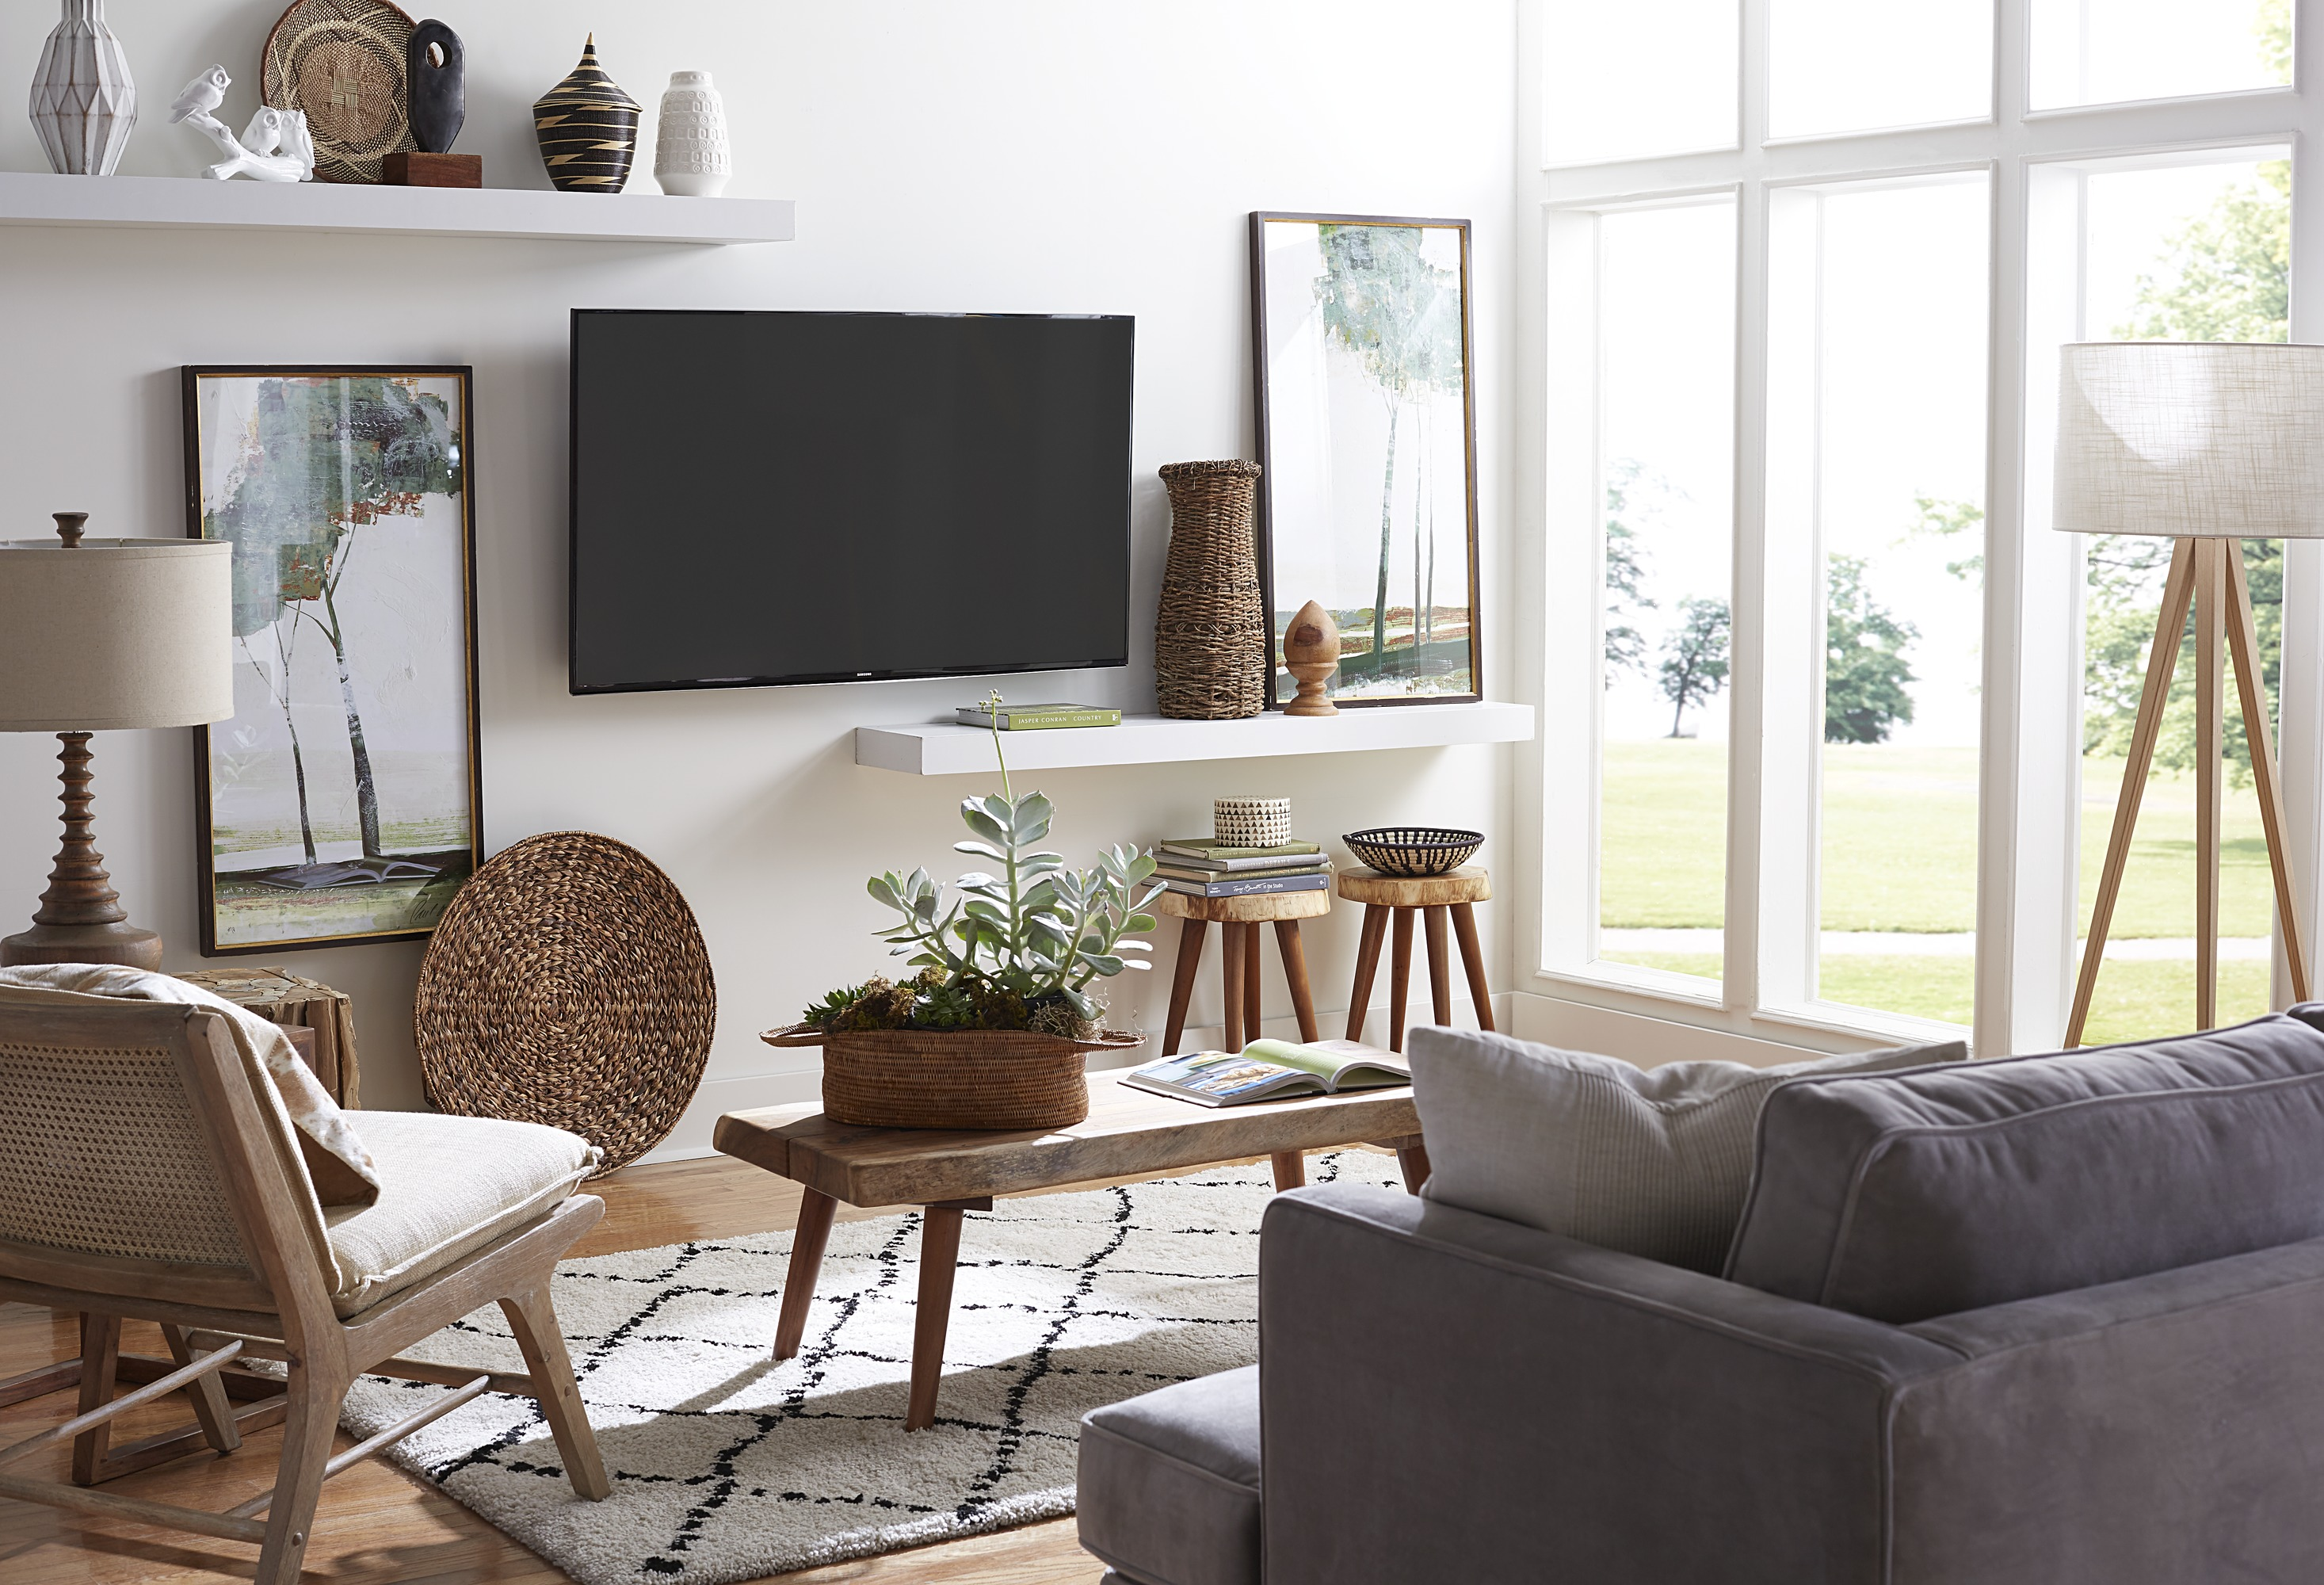 TV in Room with Windows